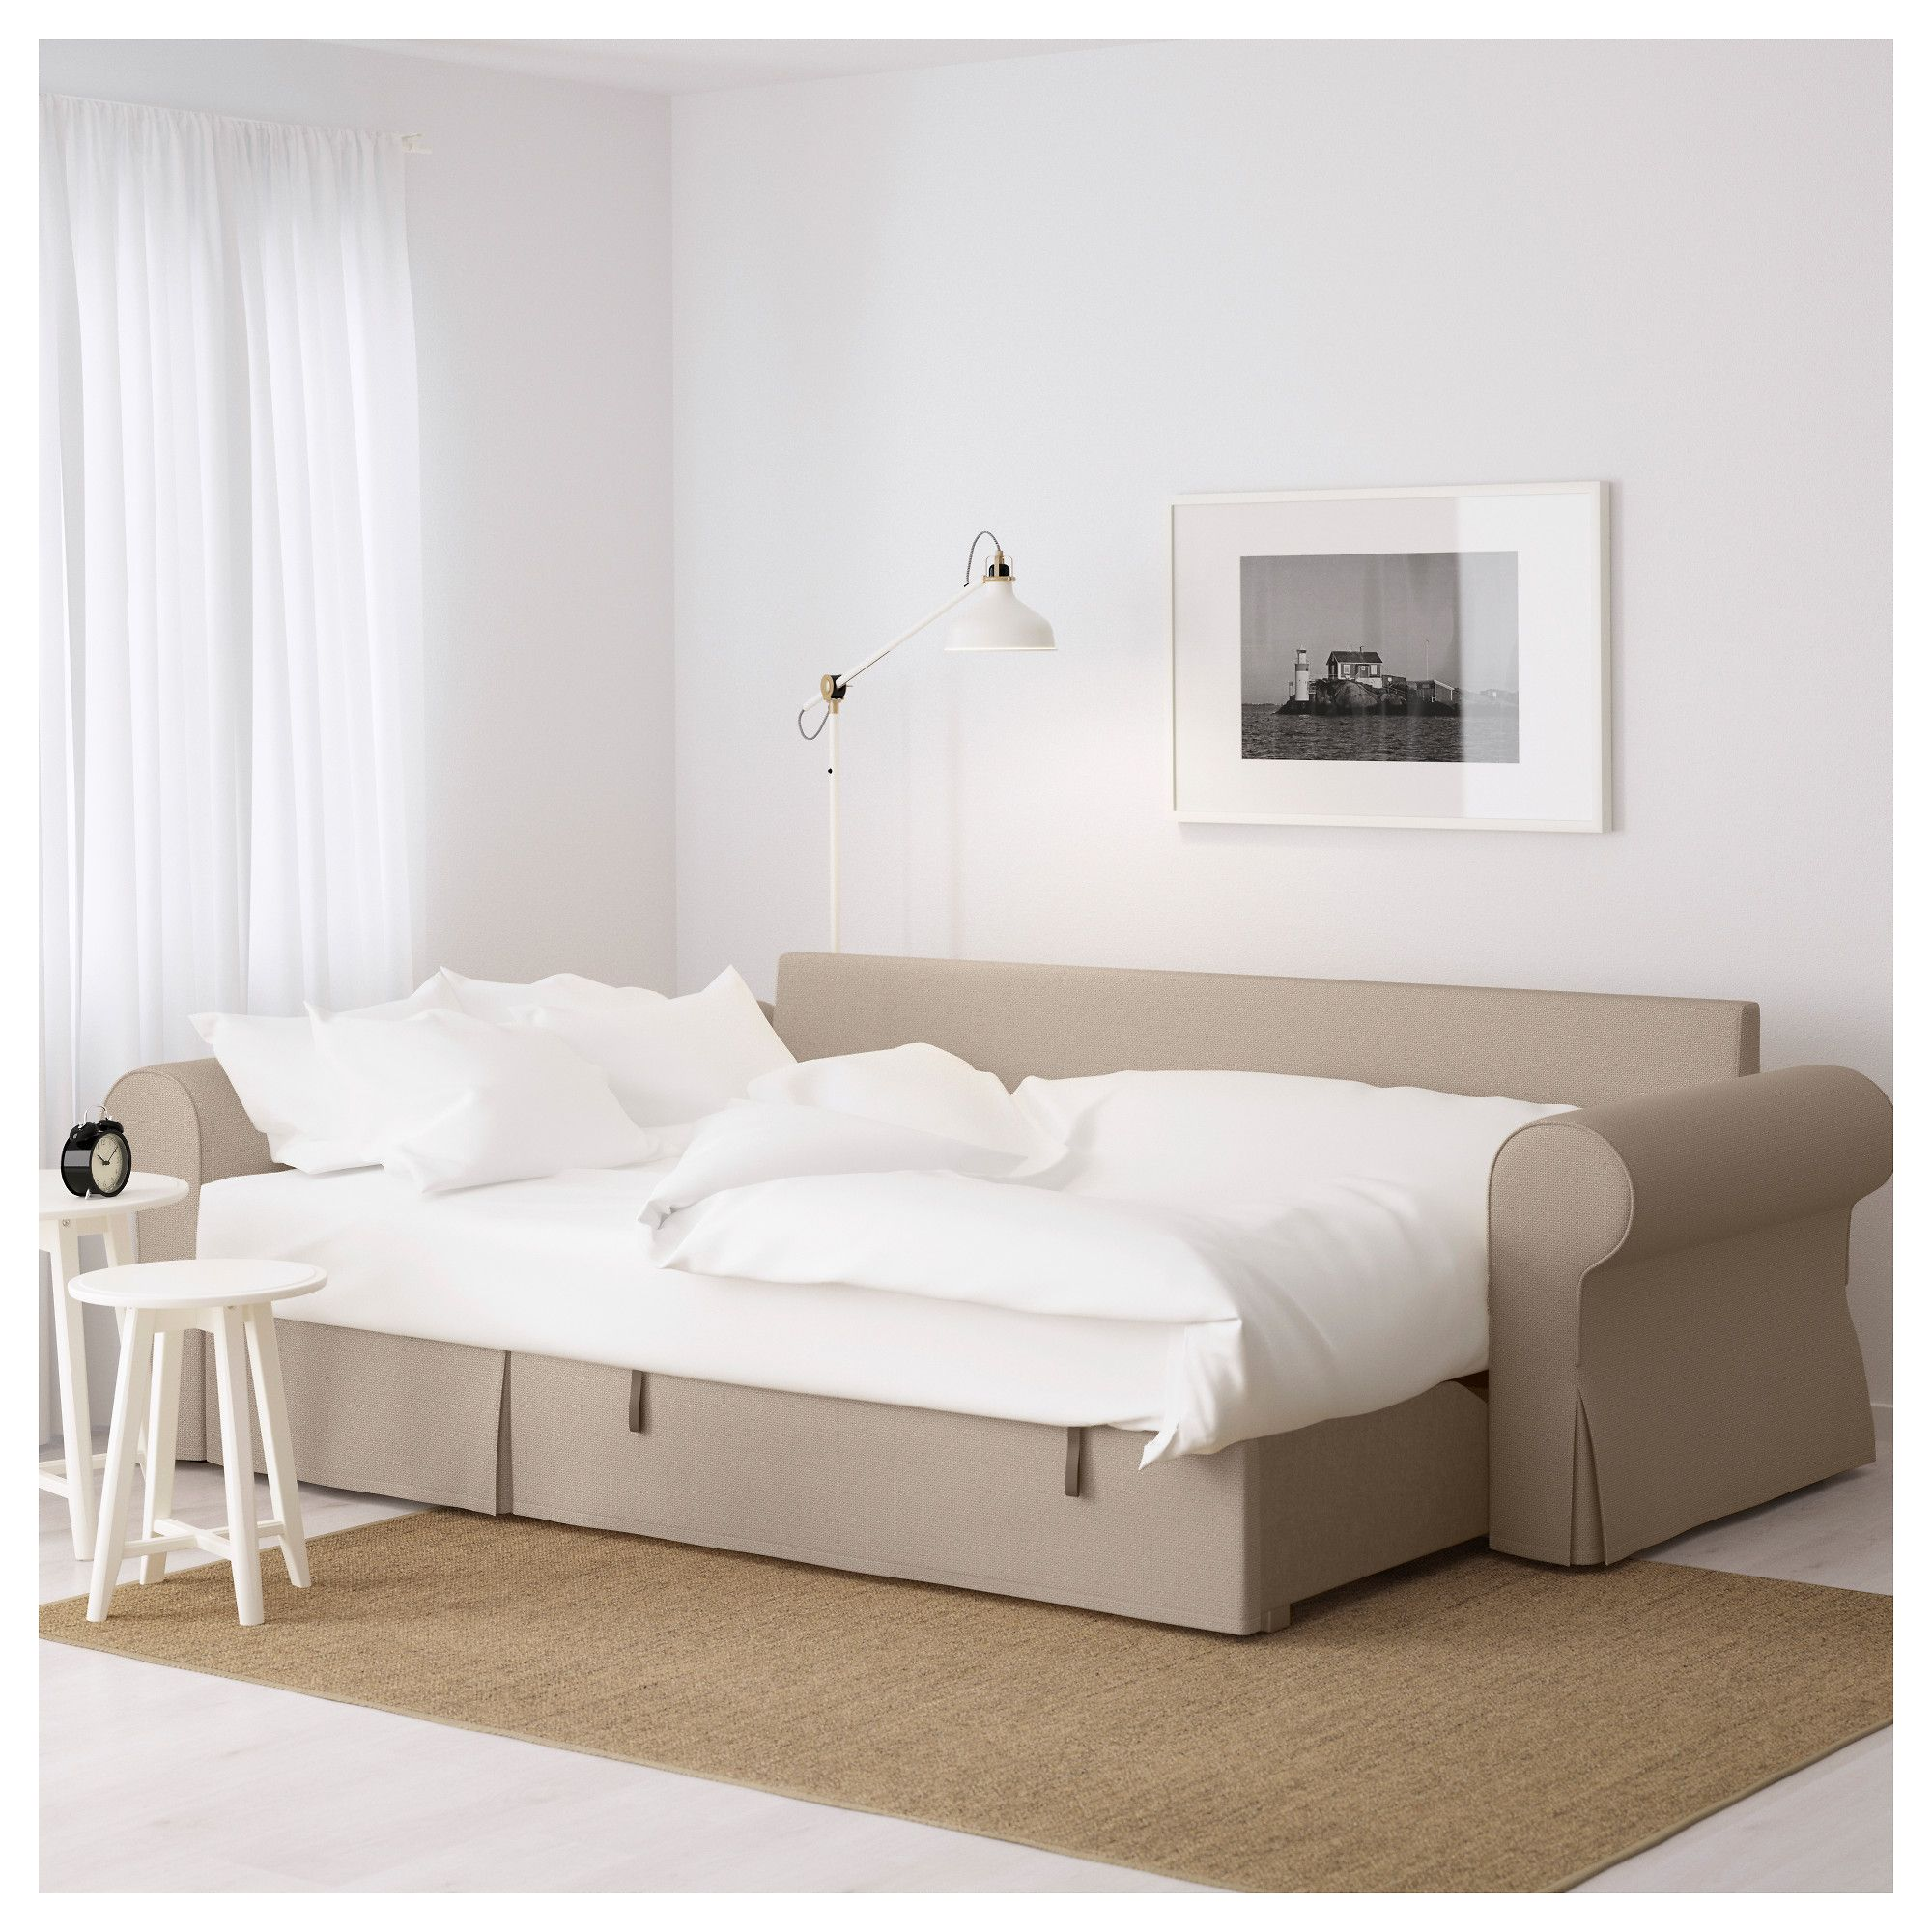 Backabro Ecksofa Backabro Sofa Bed With Chaise Longue Hylte Beige Ikea Office And